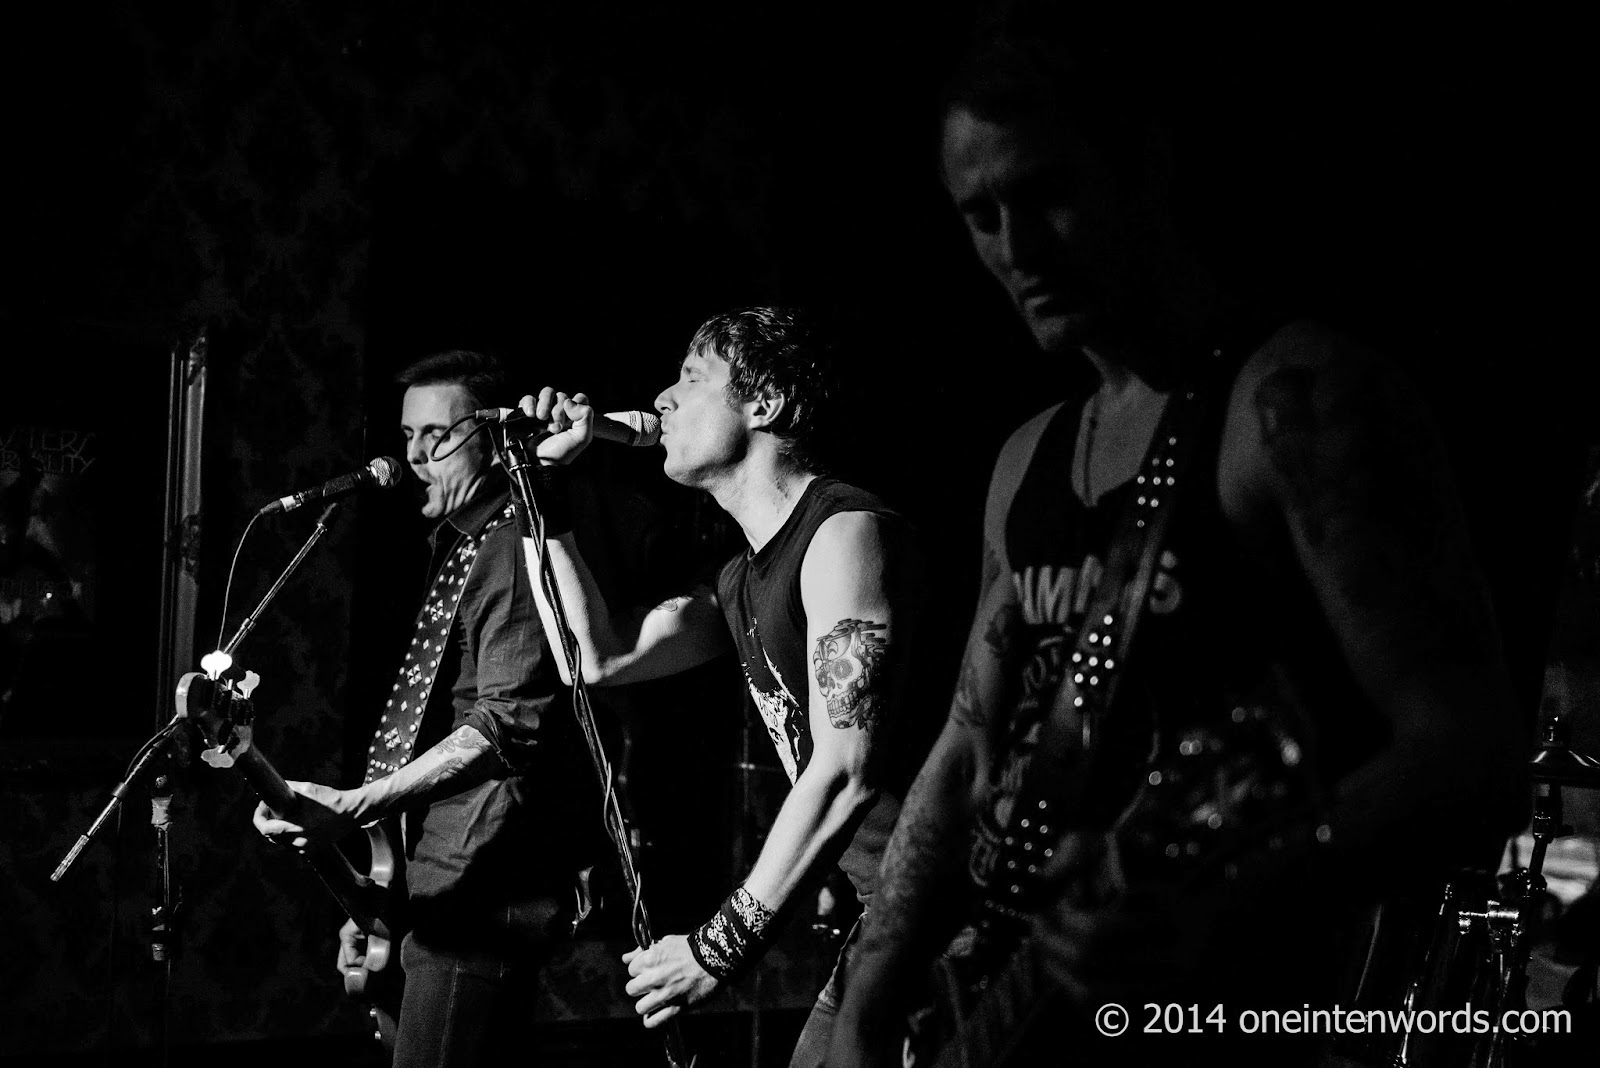 Saigon Hookers at Cherry Cola's November 21, 2014 Photo by John at One In Ten Words oneintenwords.com toronto indie alternative music blog concert photography pictures